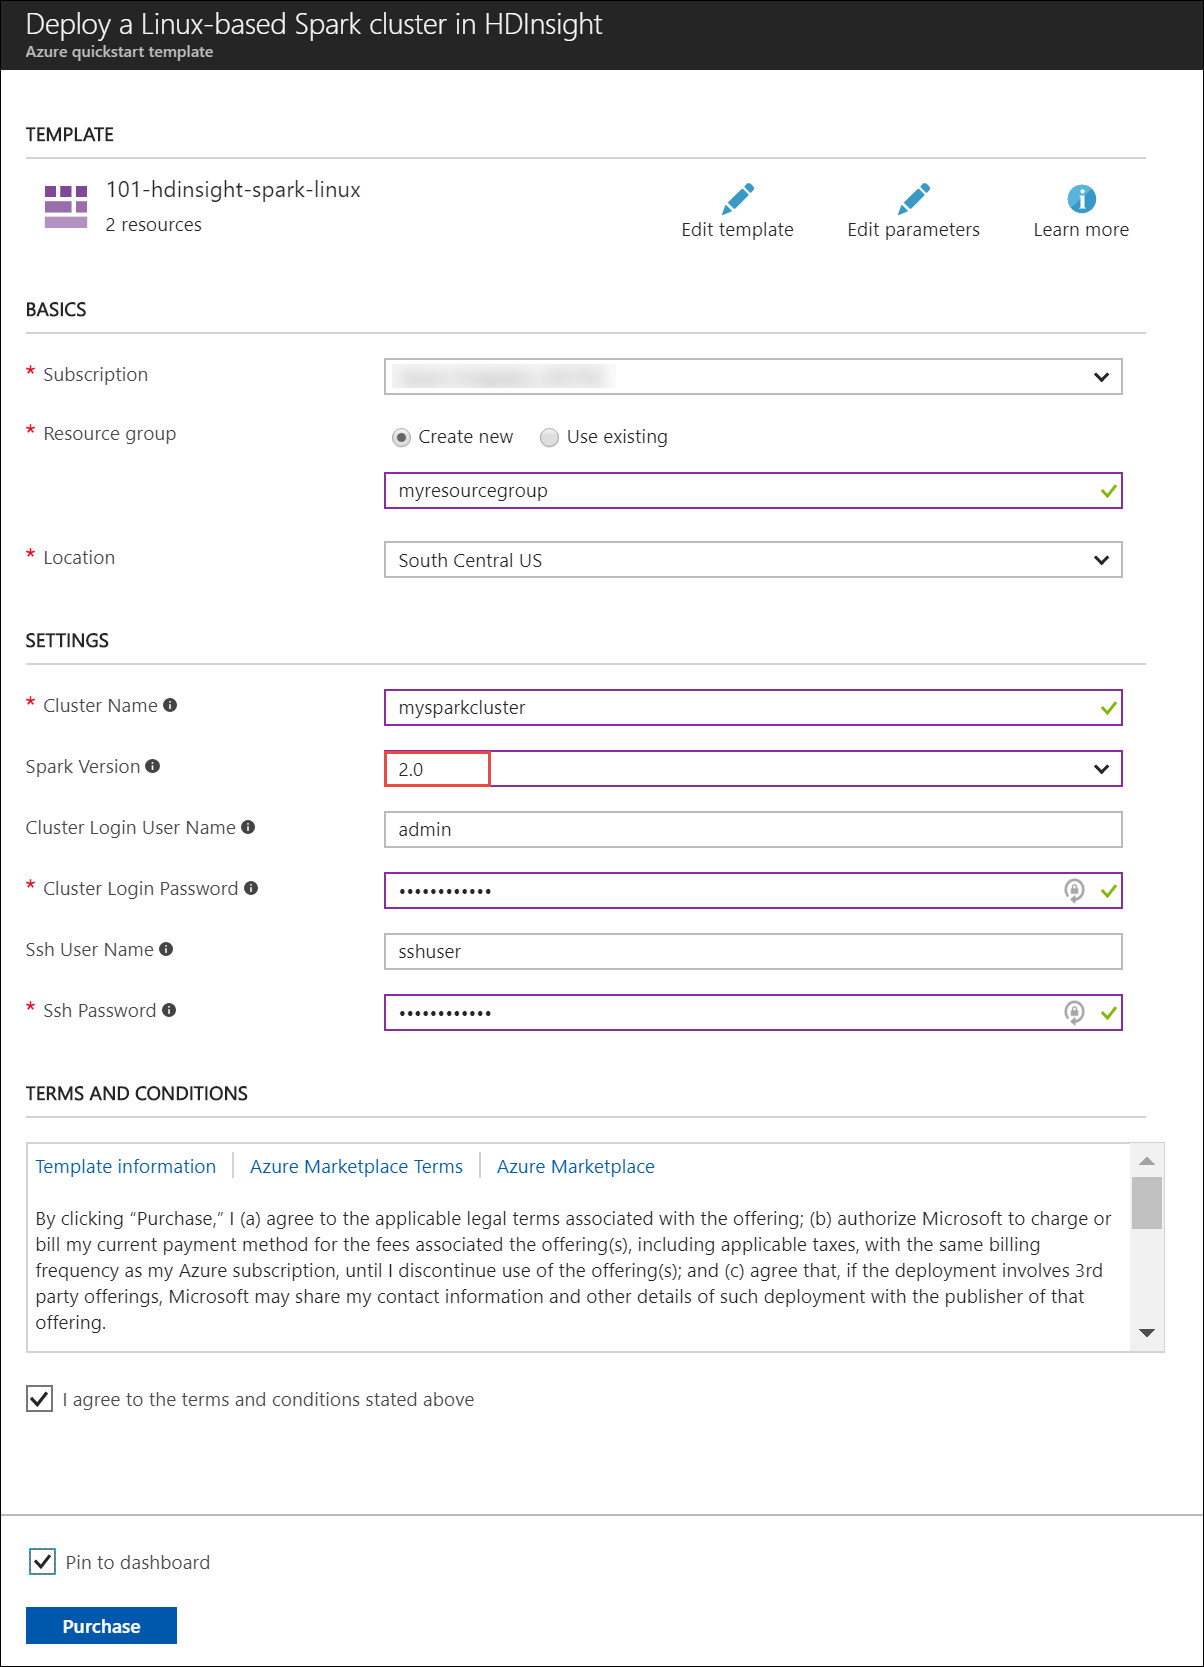 create an apache spark cluster in azure hdinsight